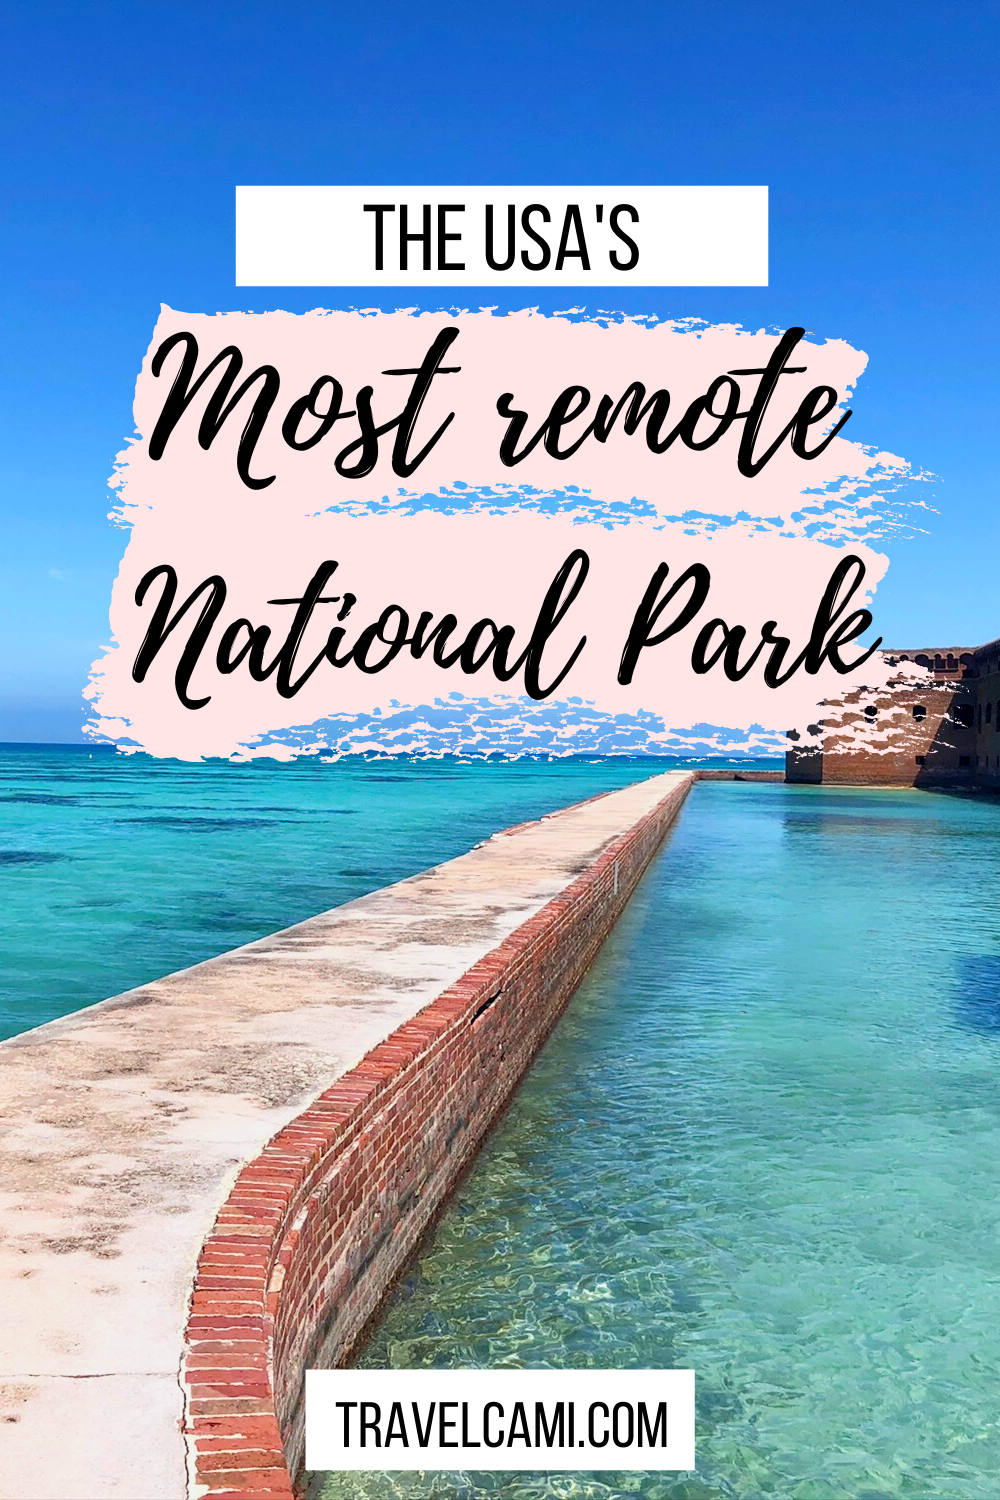 , Dry Tortugas: The United States MOST remote National Park, My Travels Blog 2020, My Travels Blog 2020